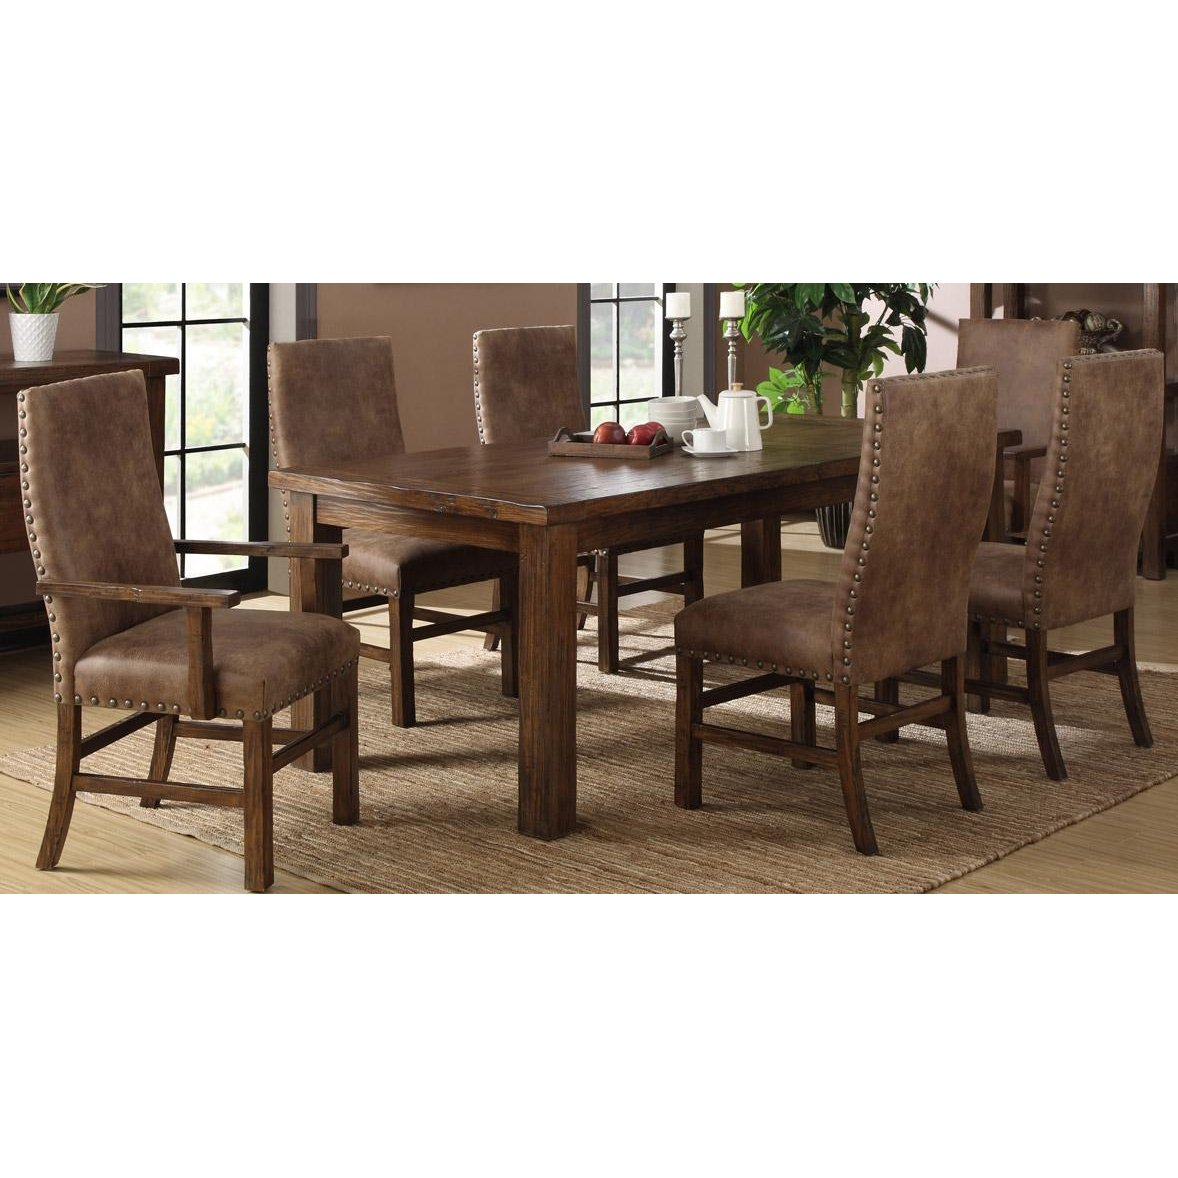 Rc Willey Sacramento: 5 Piece Dining Set - Chambers Creek